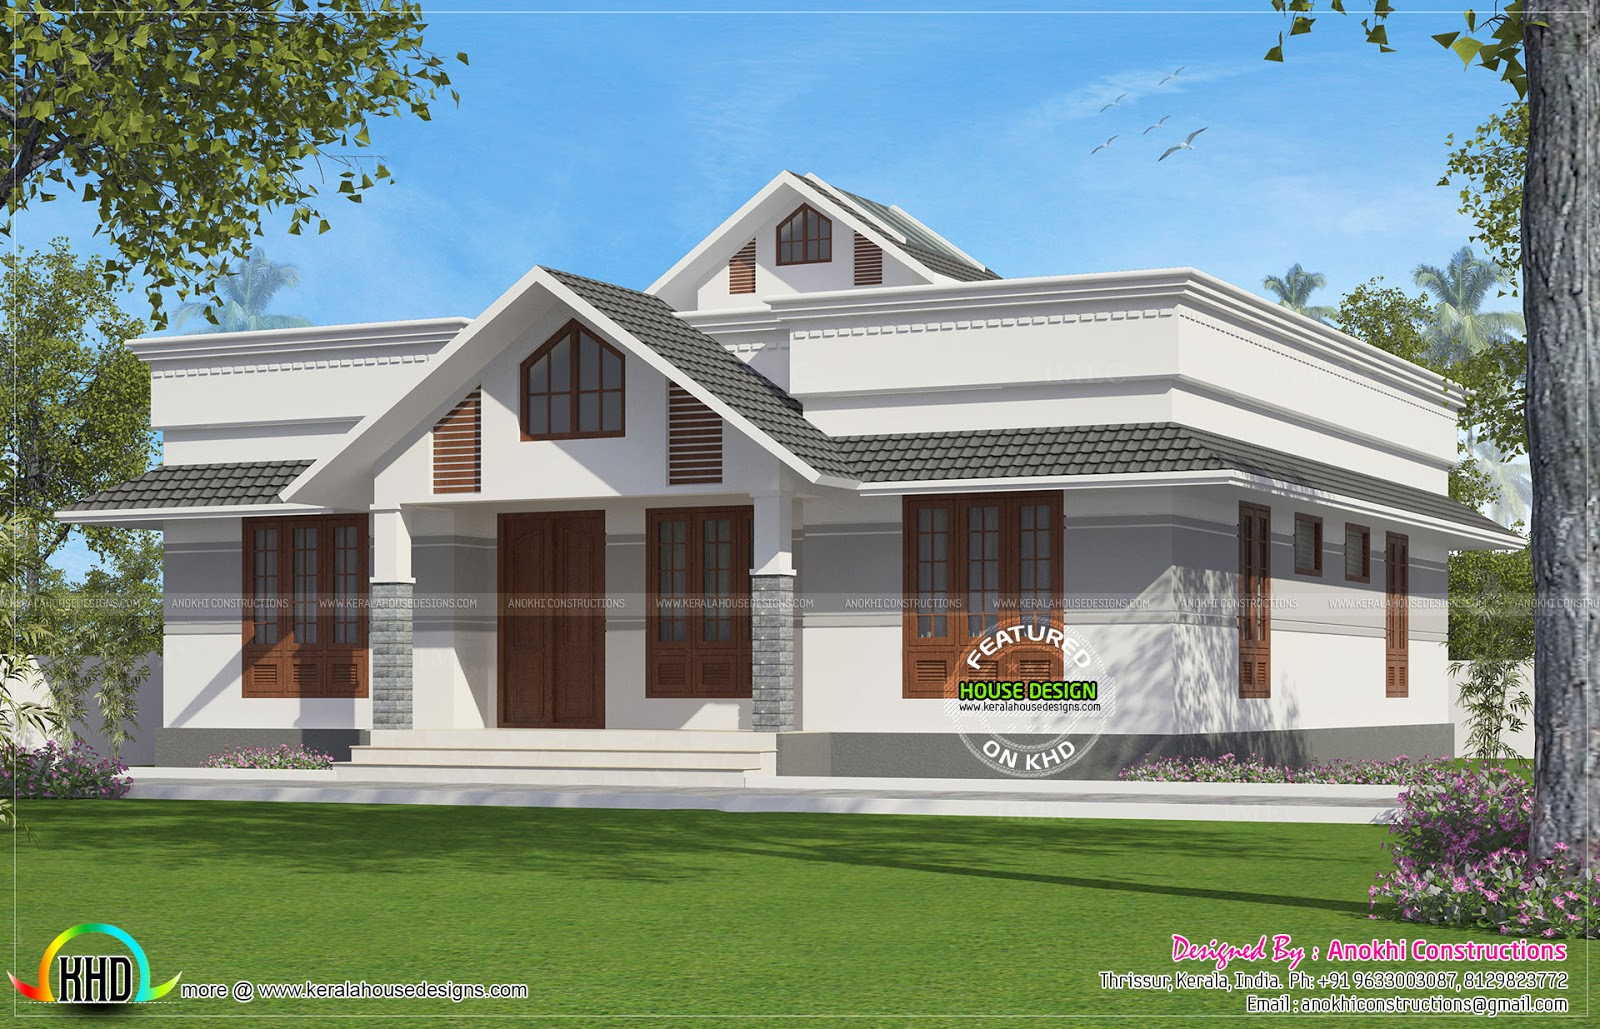 1330 square feet small house plan kerala home design and for Small traditional home plans